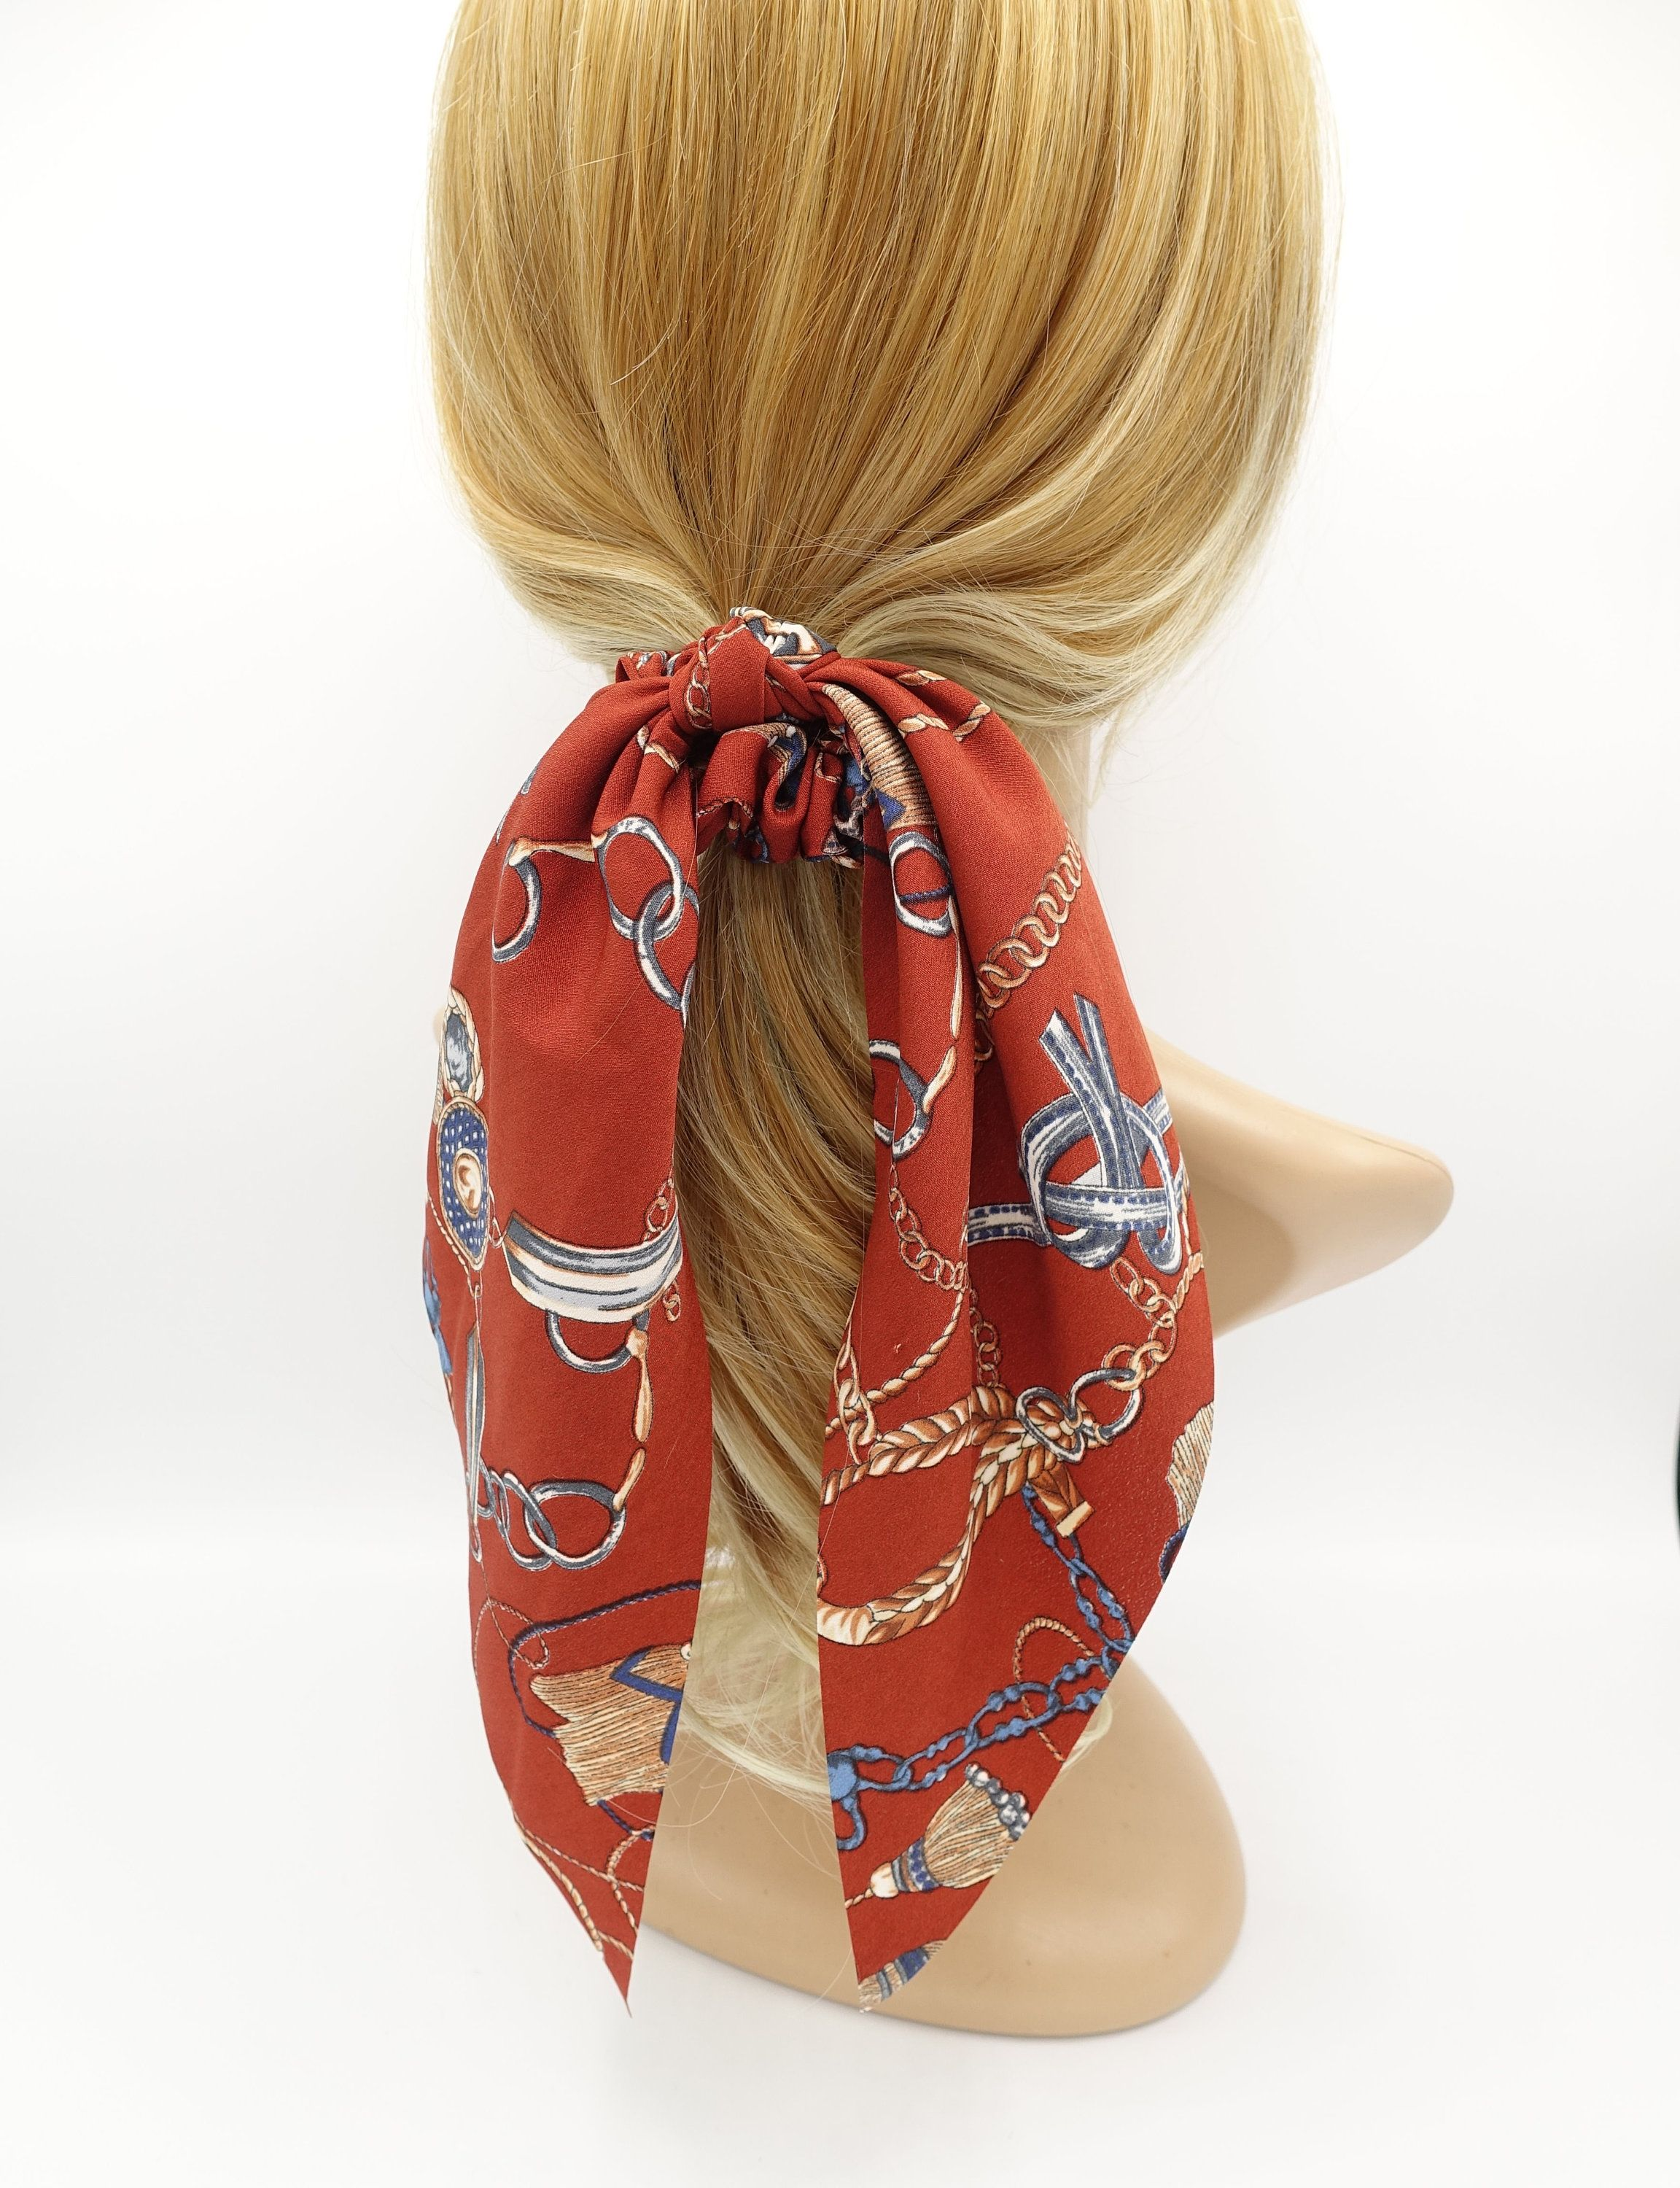 Chain Tassel Strap Print Bow Knotted Scrunchies Long Tail Etsy Hair Accessories For Women Hair Accessories Hair Accessories Chain